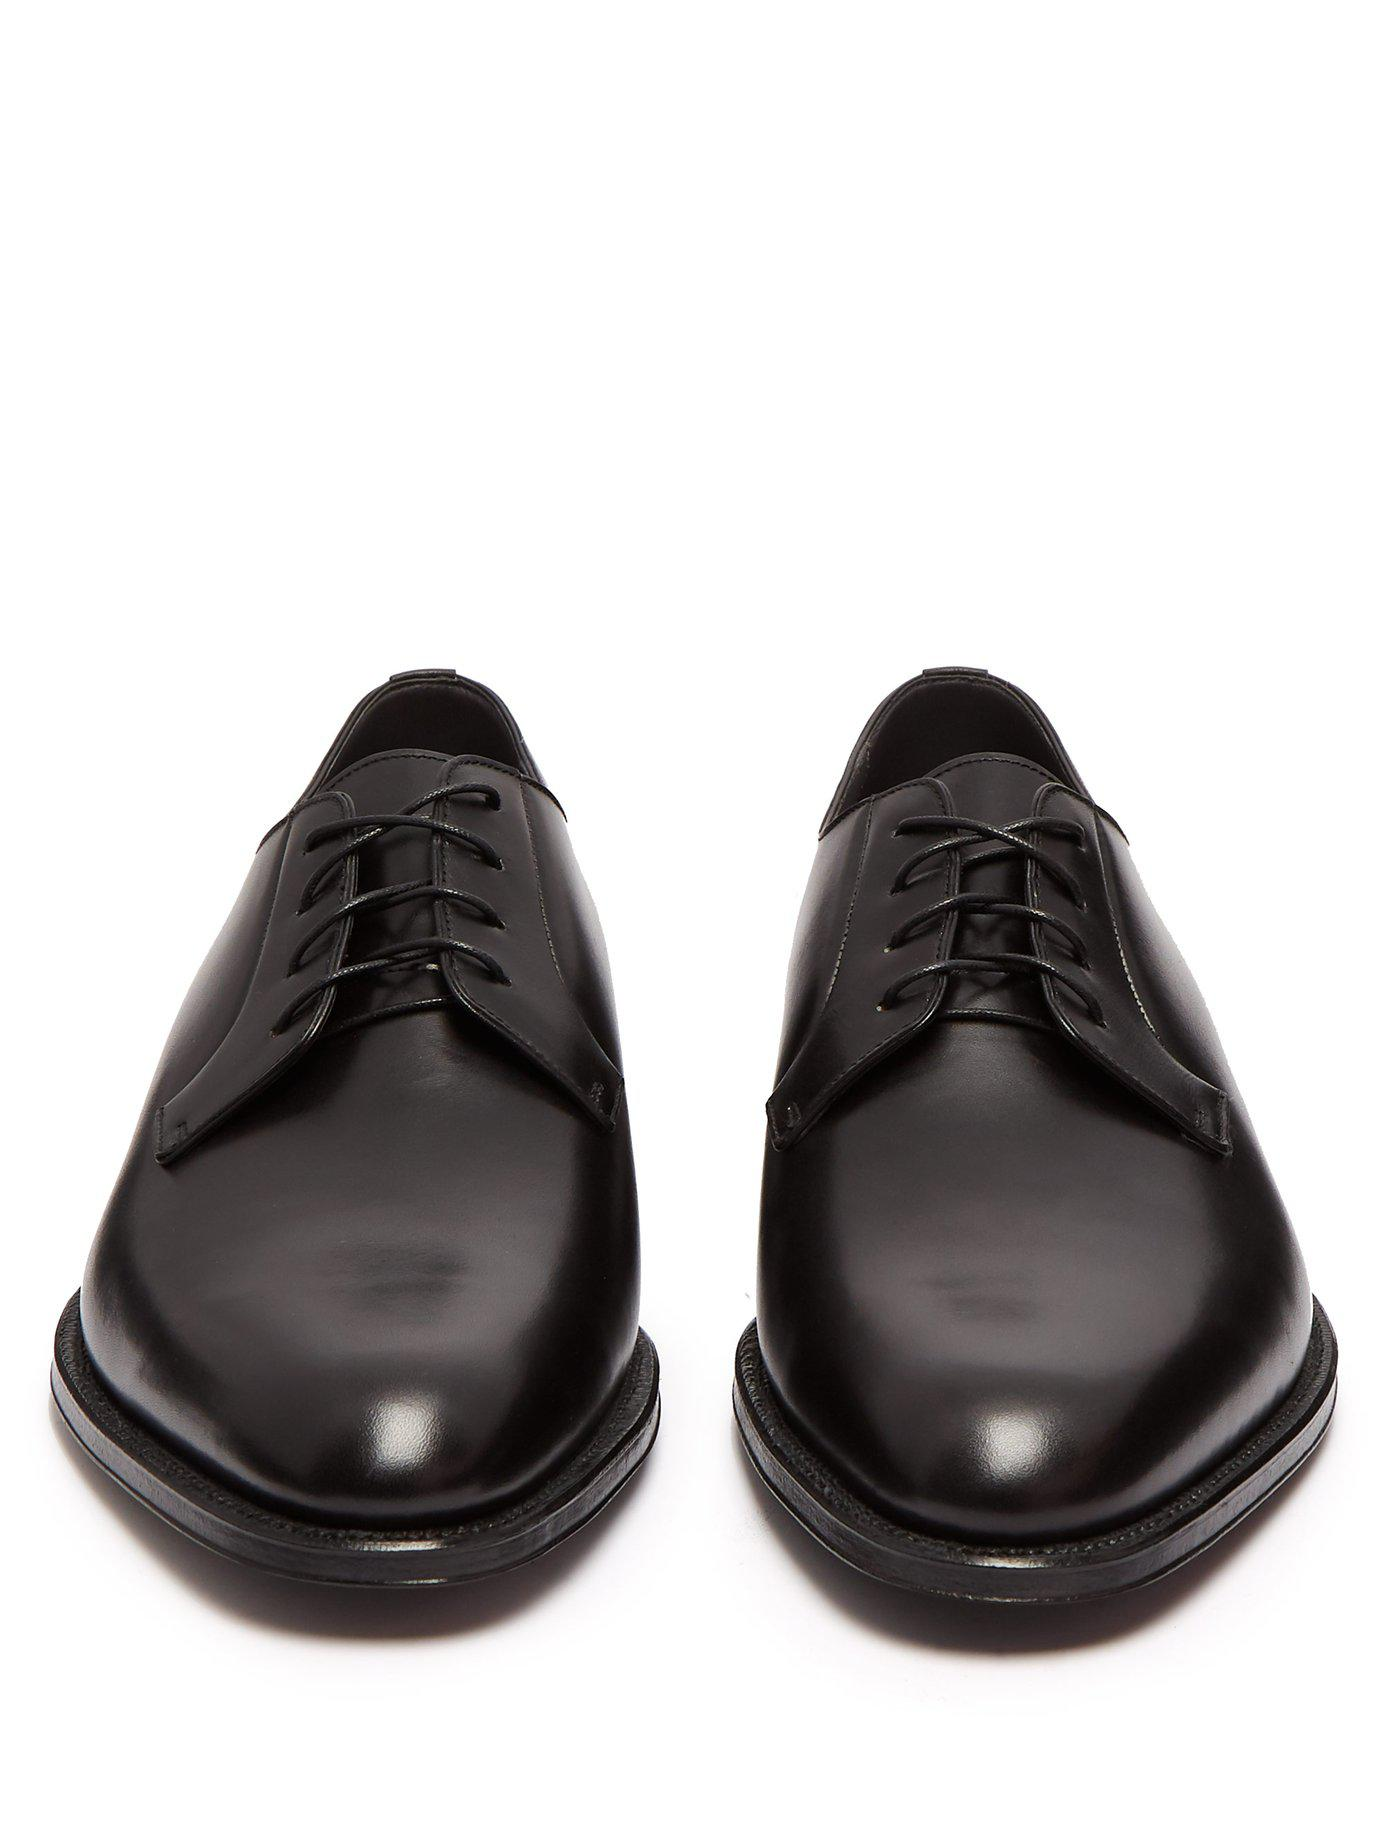 bc6119076a97 Dunhill Duke Leather Derby Shoes in Black for Men - Lyst